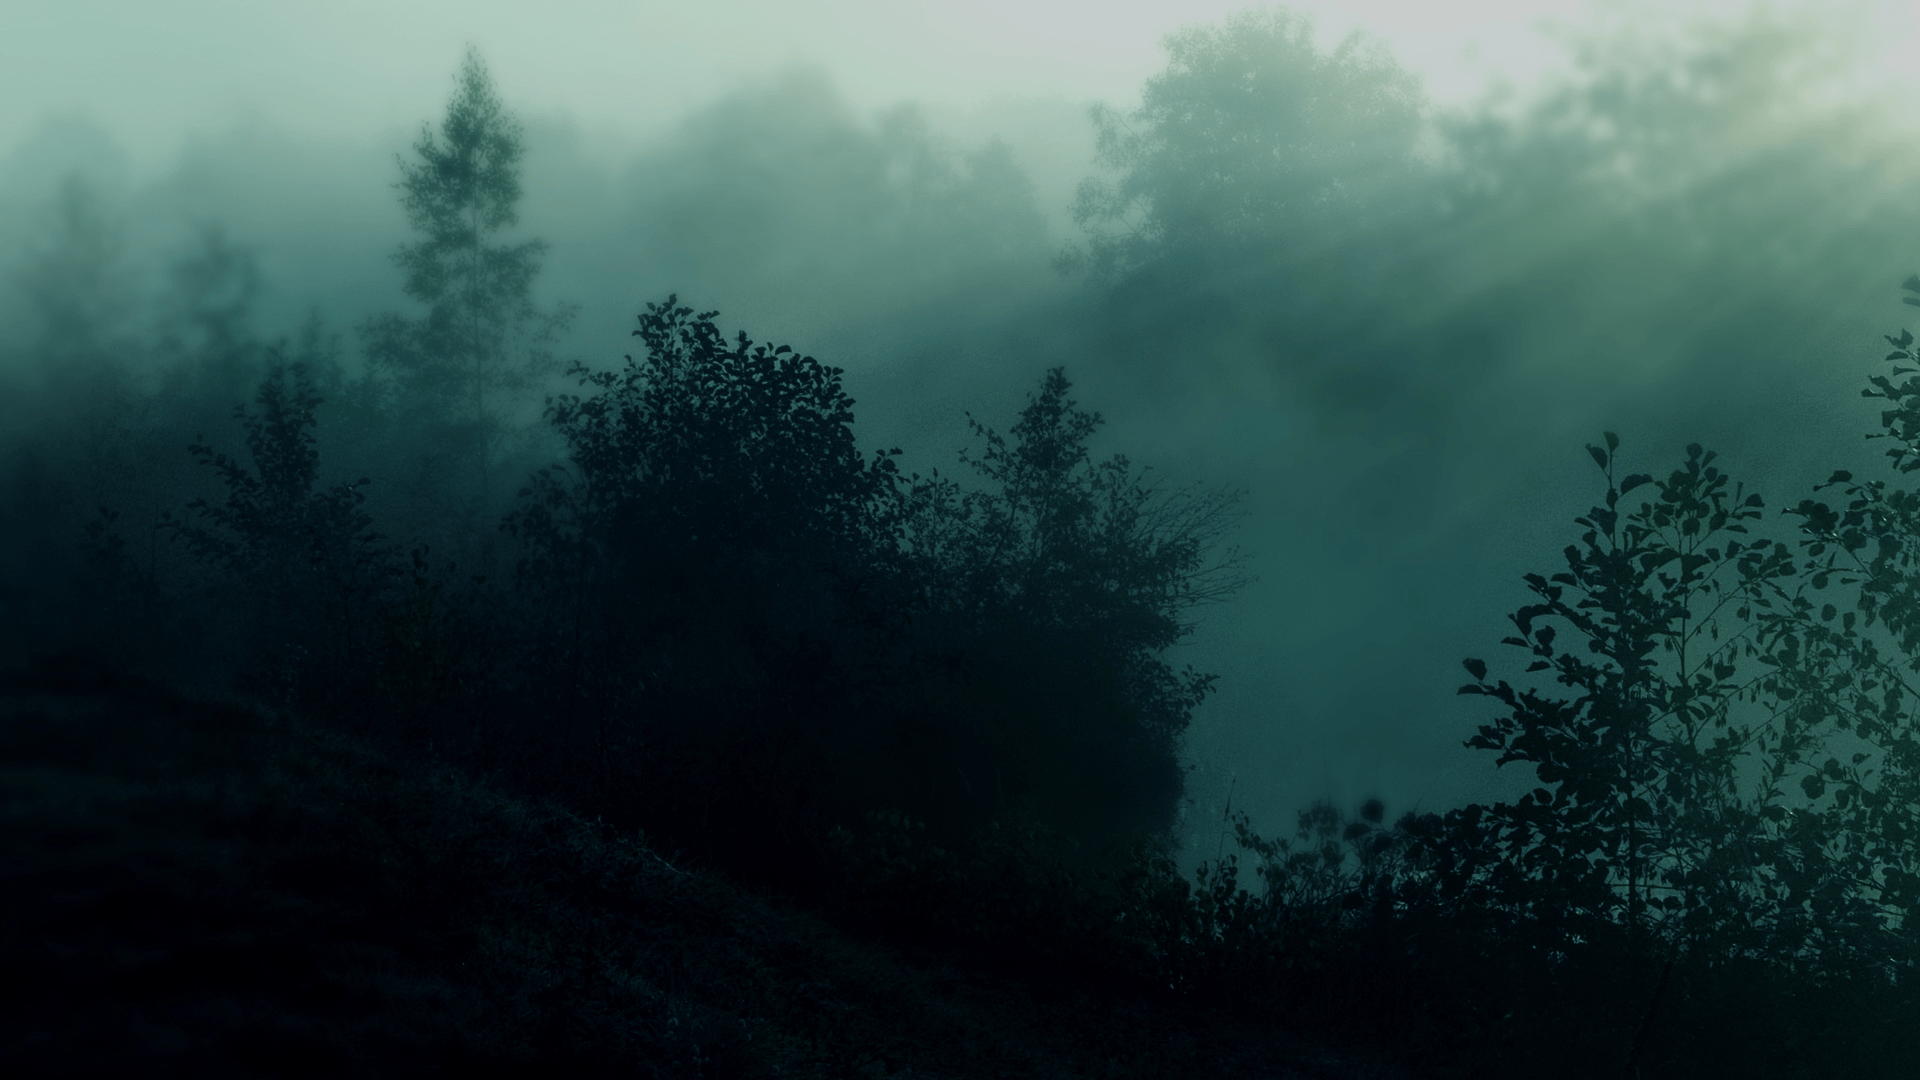 Nature Aesthetic 1366x768 Hd Wallpapers